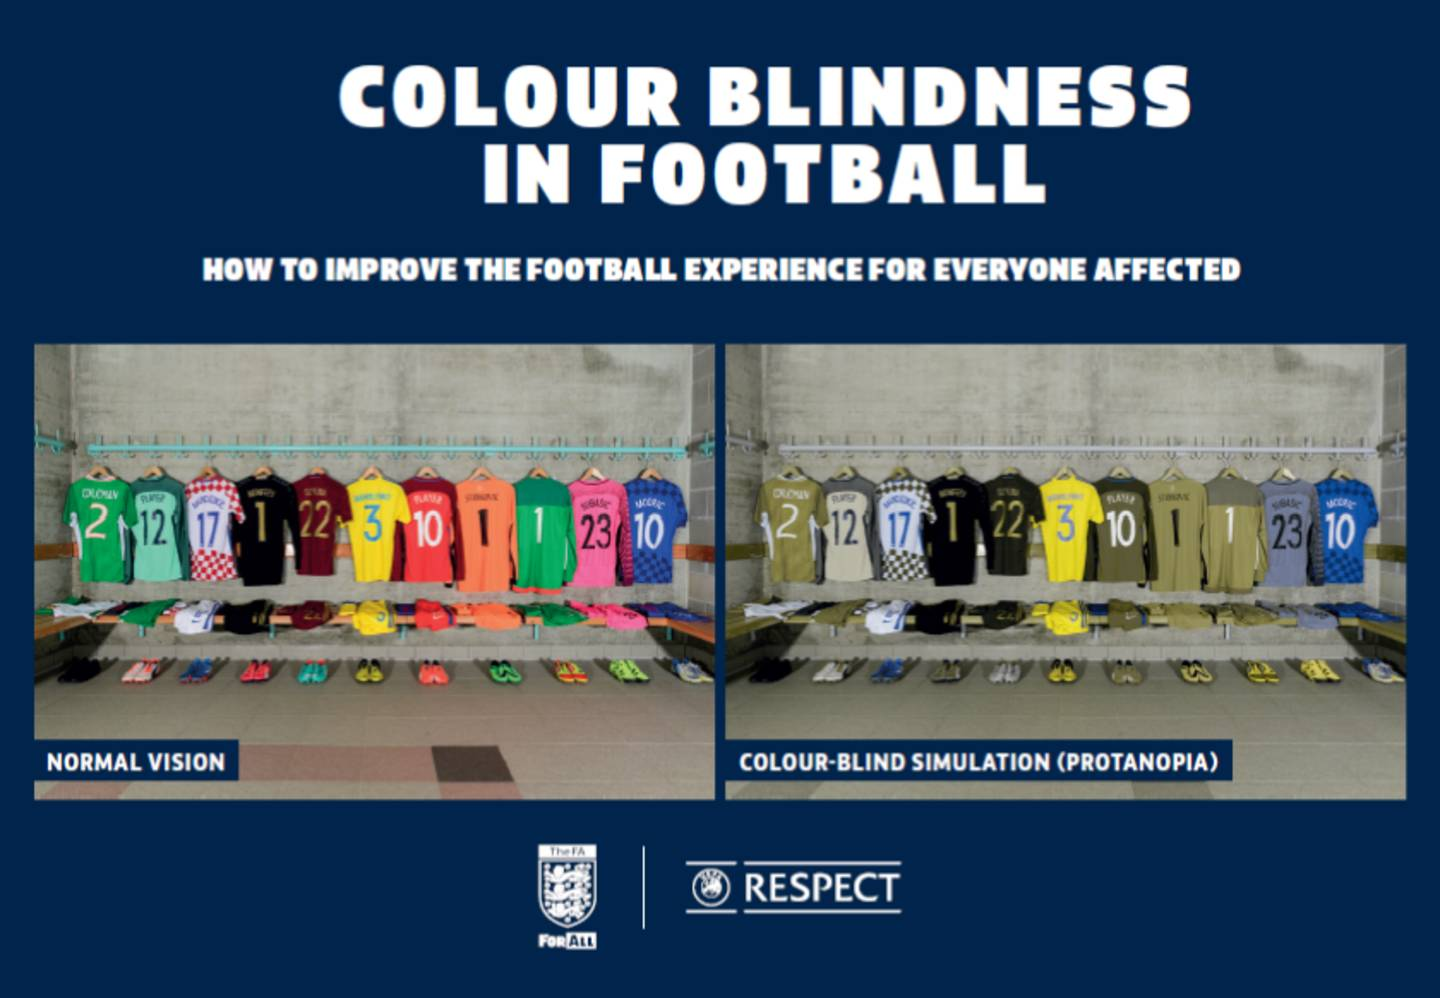 Colour blindness guide cover